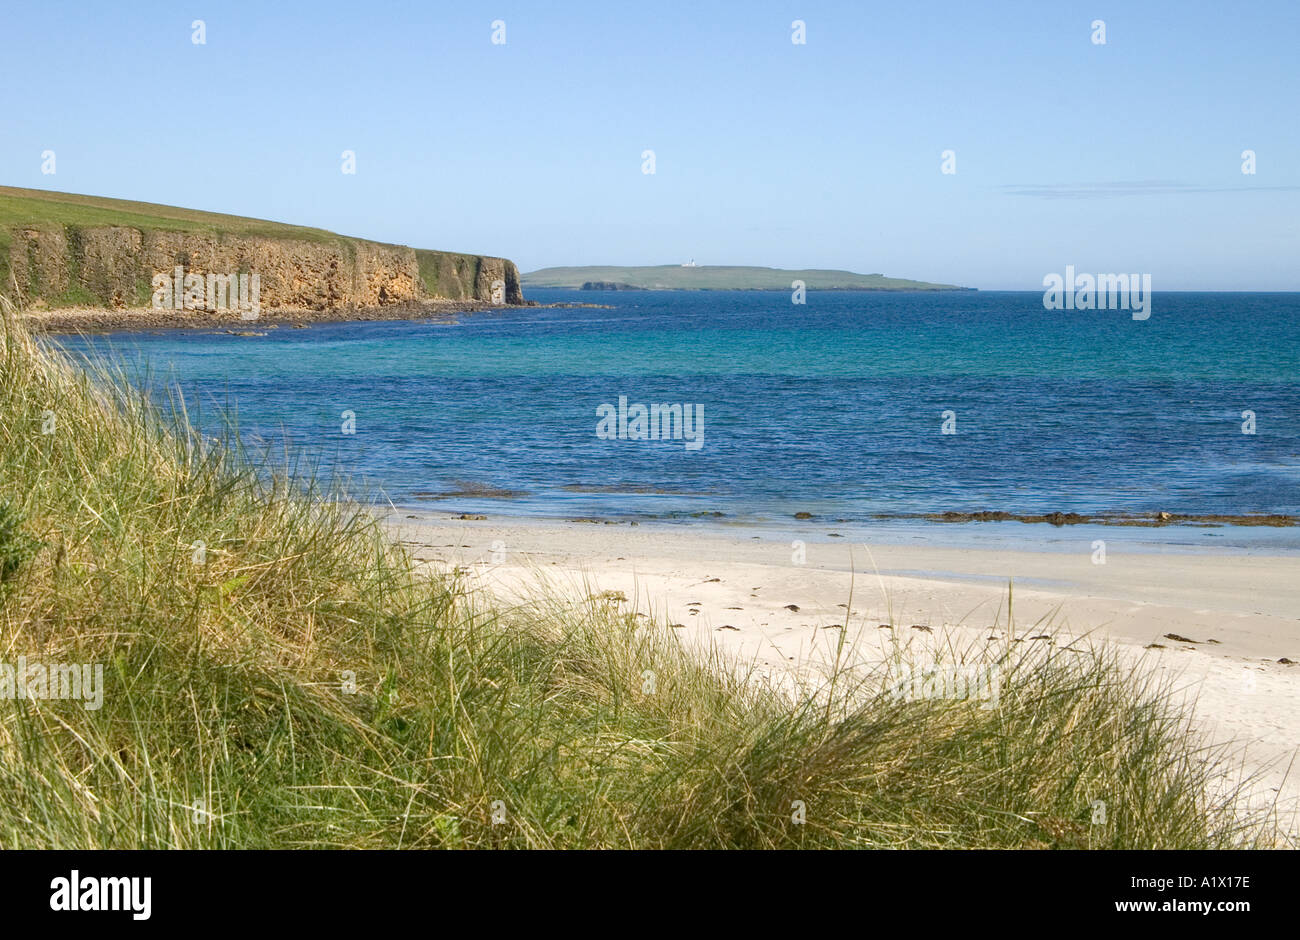 dh Dingieshowe DEERNESS ORKNEY Bay silver sandy beach blue sea sky Copinsay Island sand grass Stock Photo